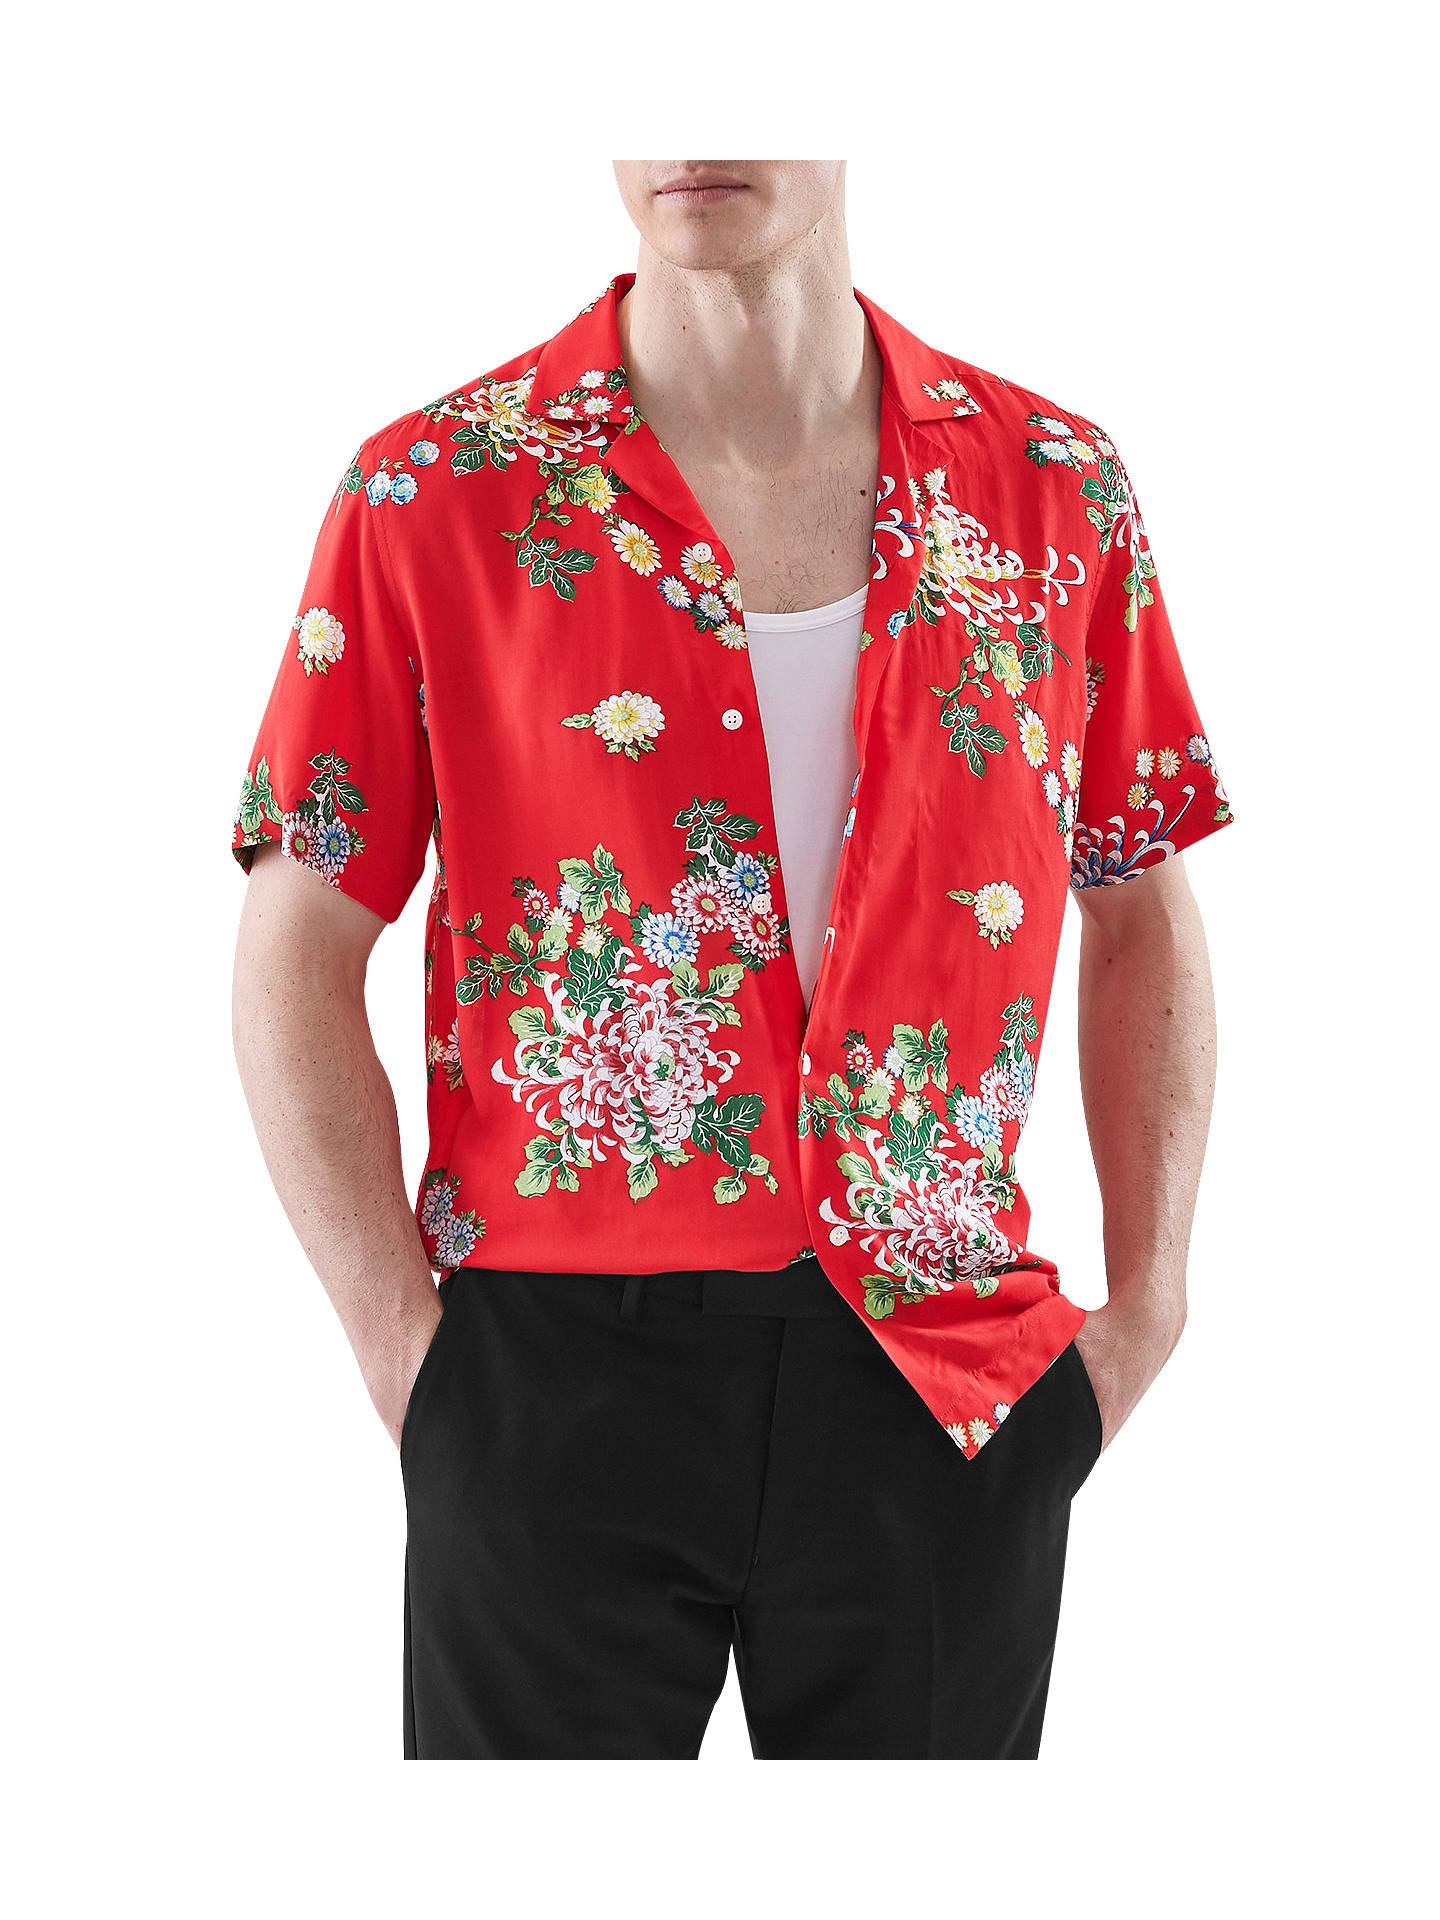 768d45eeea100 Buy Reiss Mimi Short Sleeve Floral Shirt, Red, S Online at johnlewis.com ...